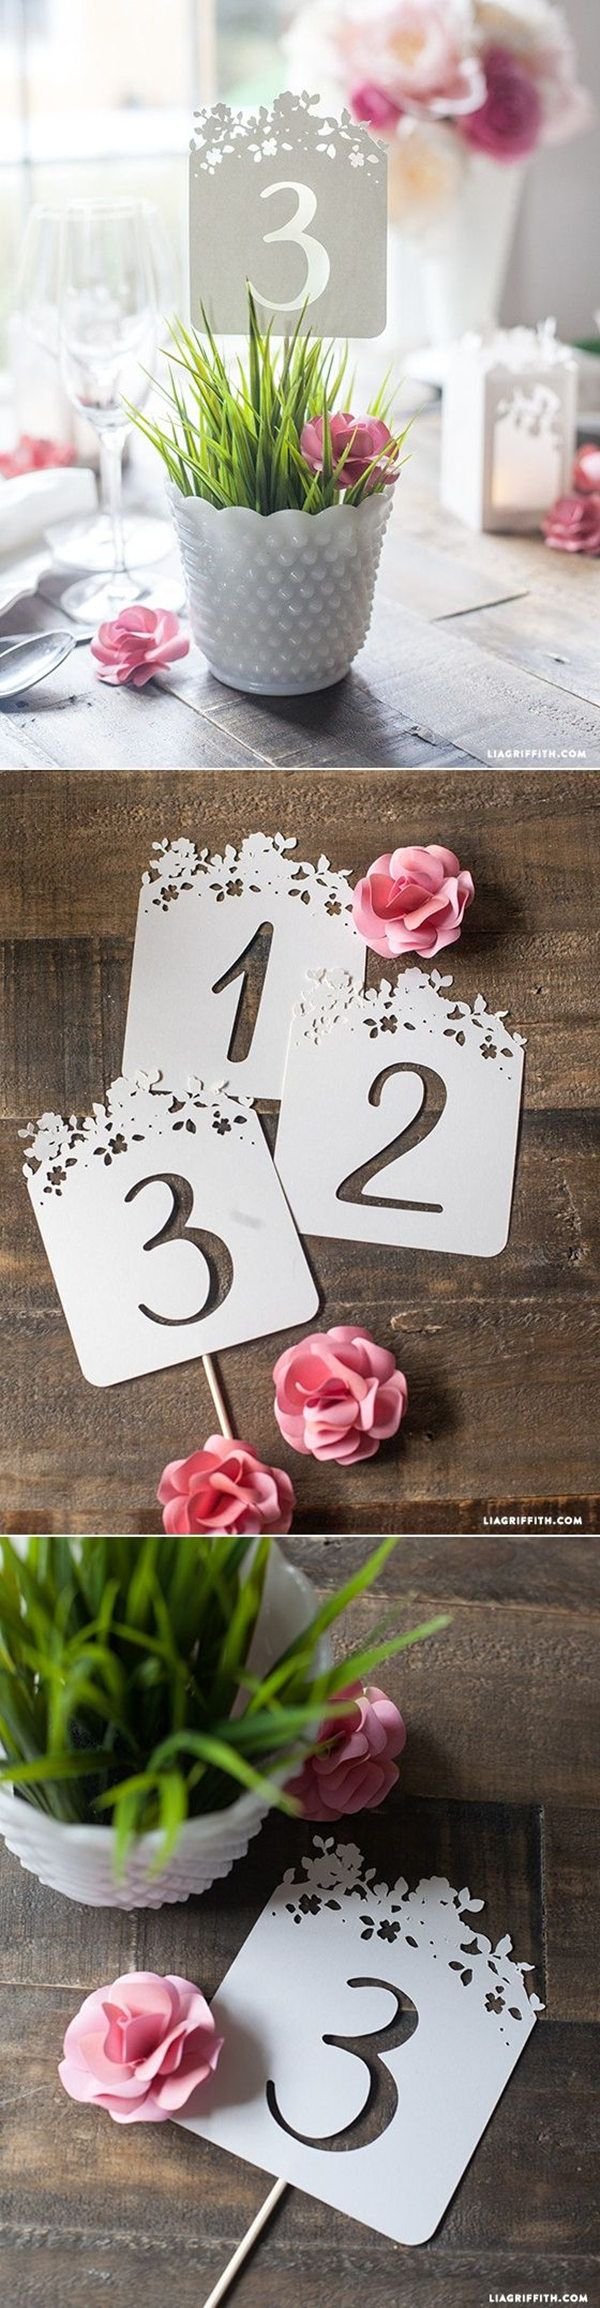 DIY Wedding Table Numbers spring wedding ideas